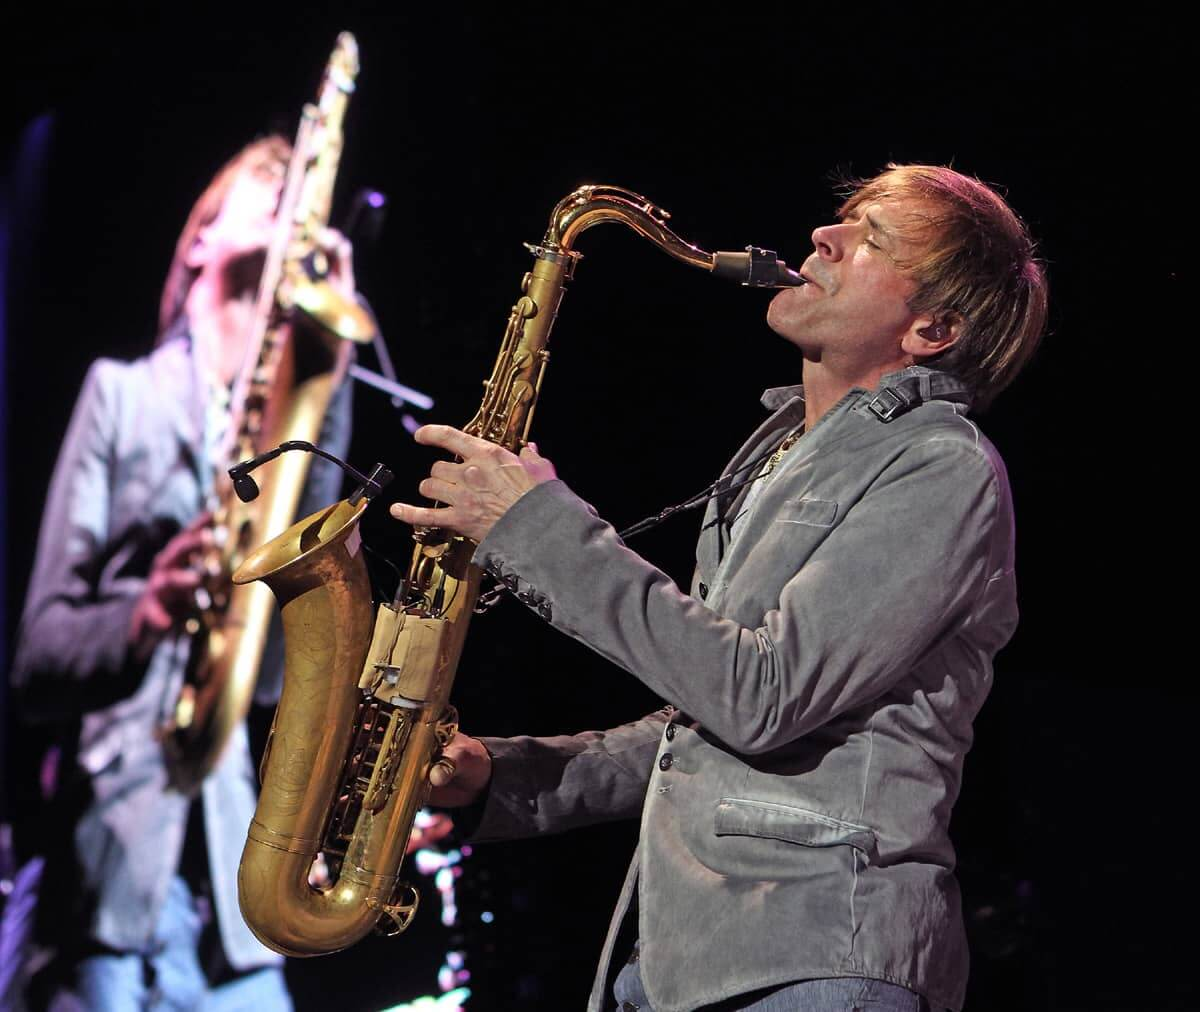 Steve Norman Spandau Ballet playing the saxophone, copyright and credits to Marilyn Kingwill